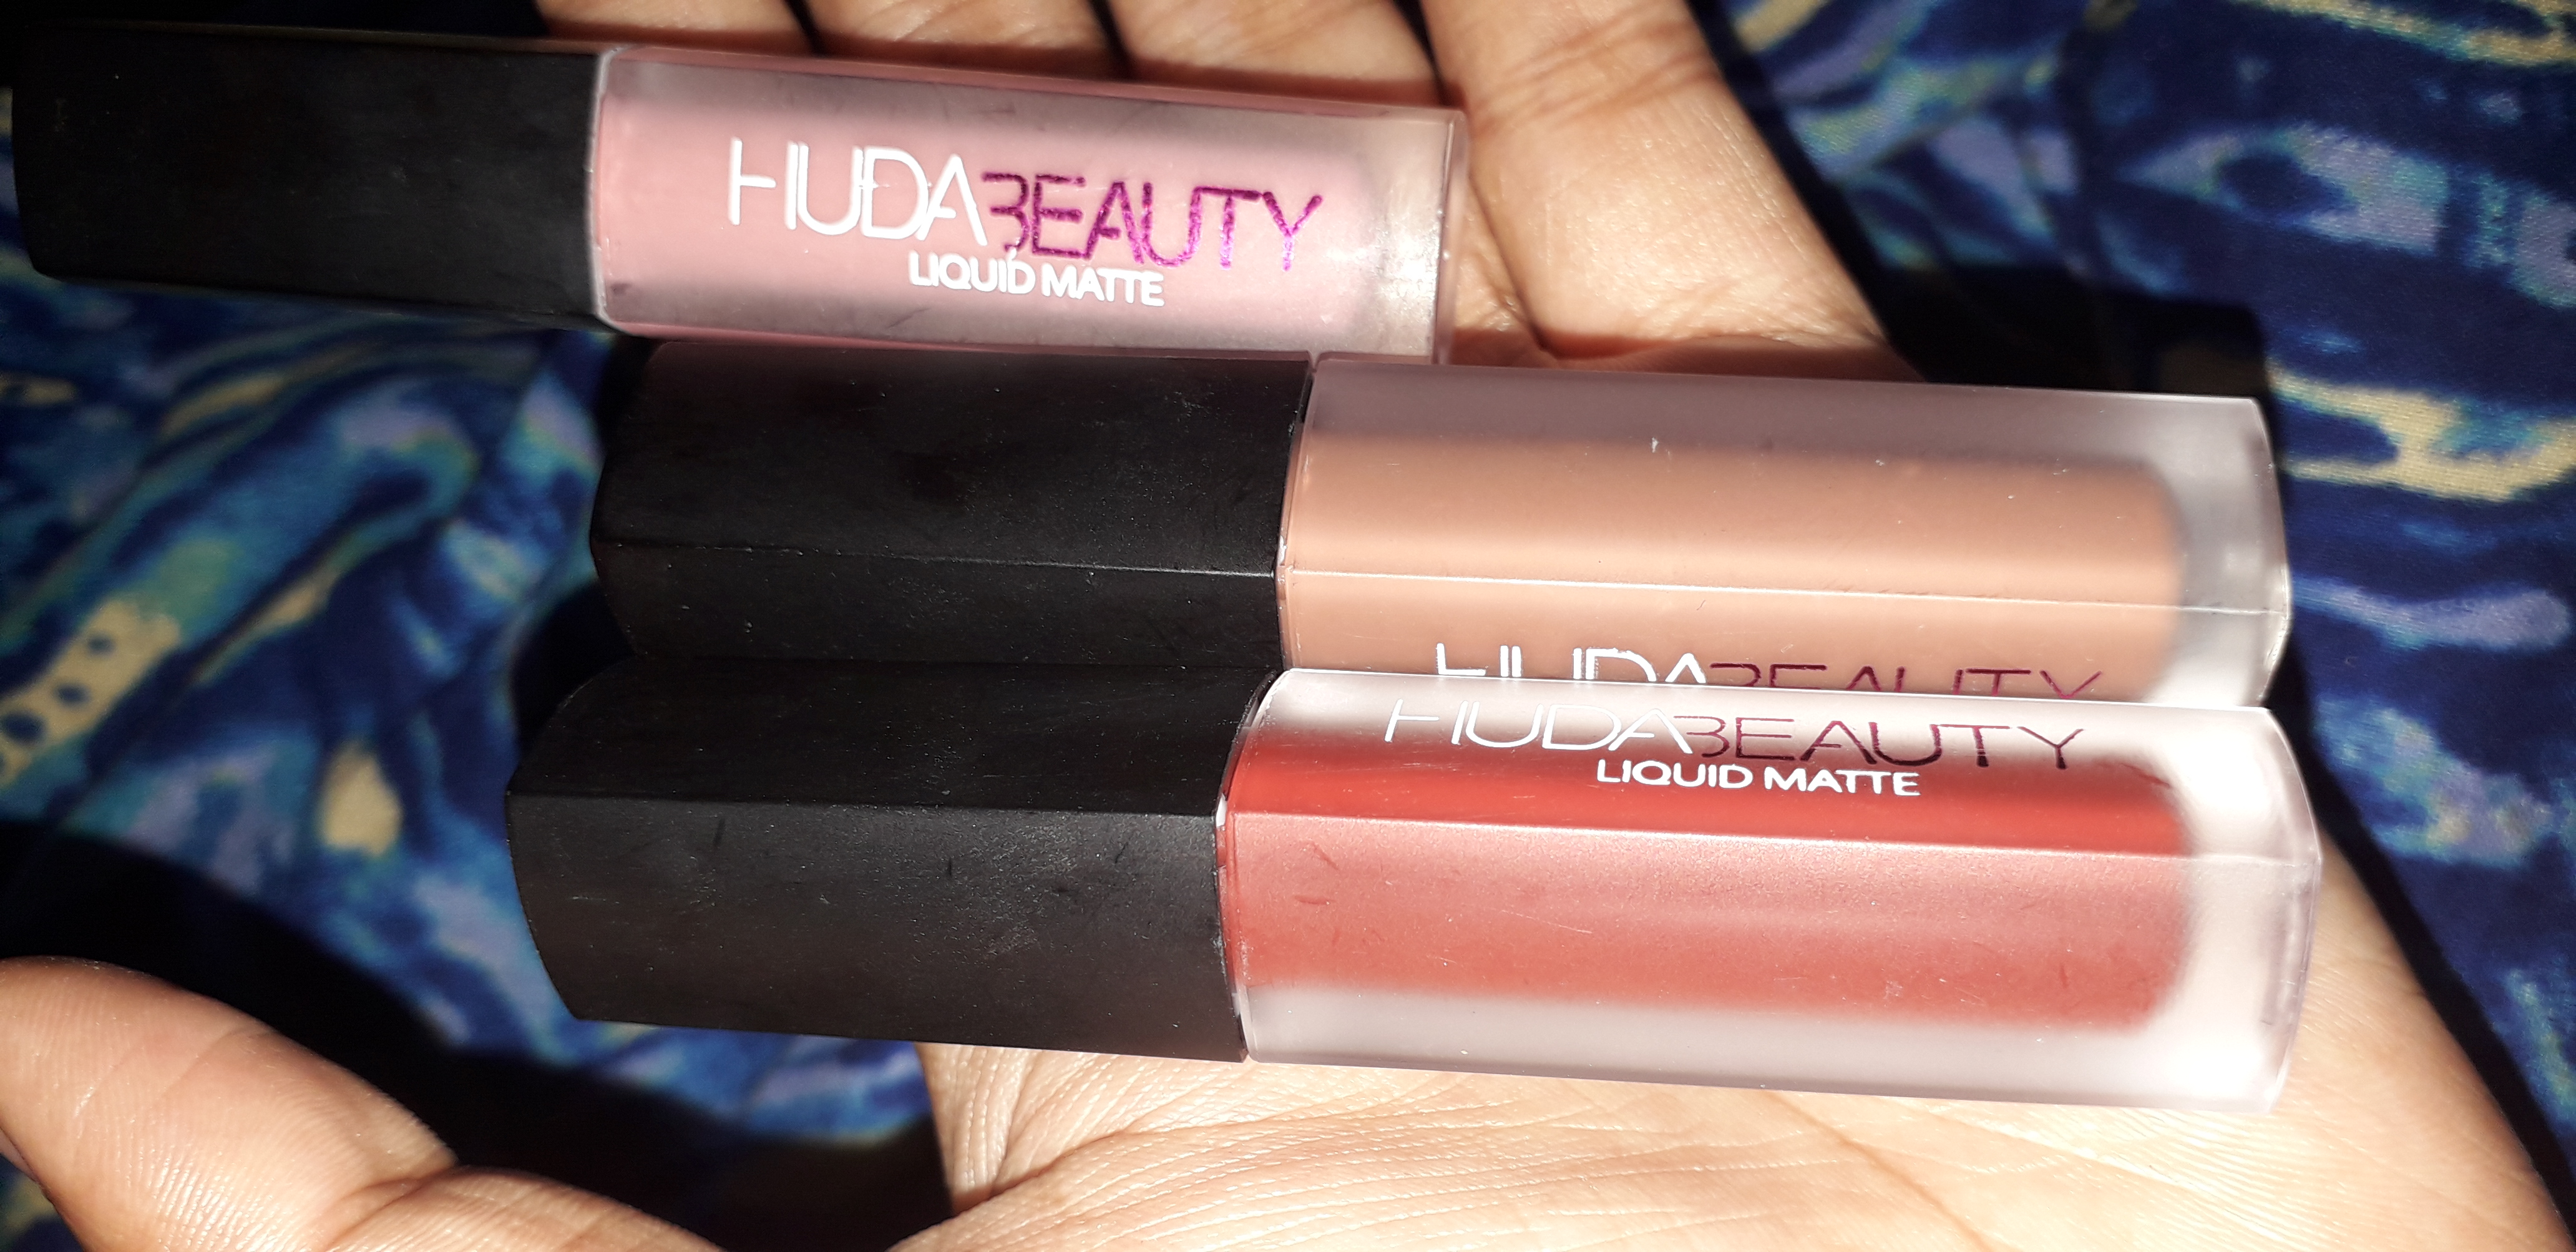 Huda Beauty Liquid Matte Lipstick-Huda Beauty matte lipstick-By arisha_-1